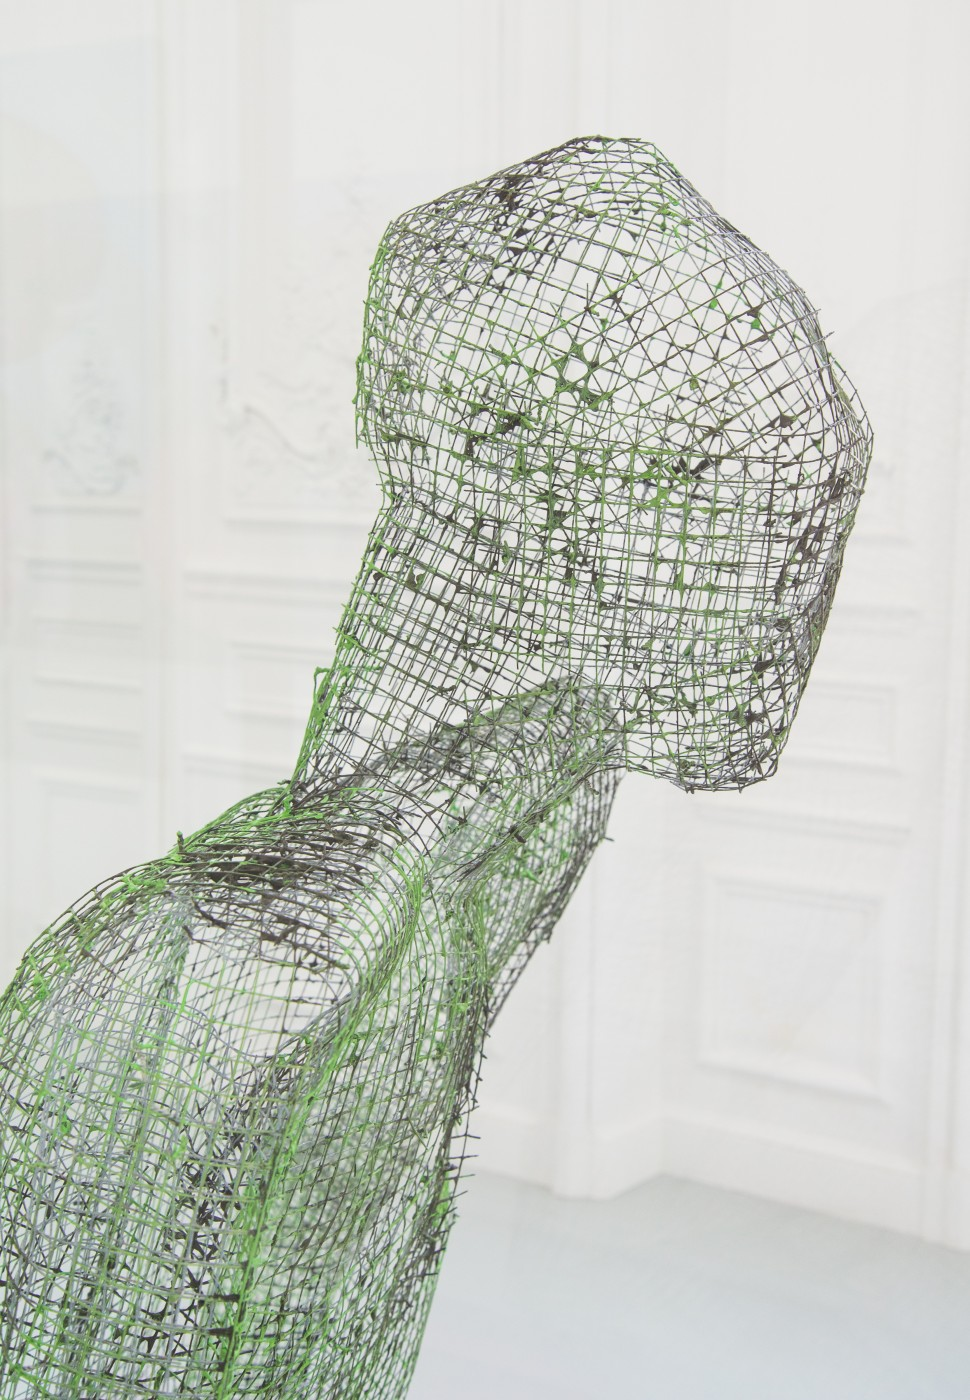 TOM HUMPHREYS  Figure Verte</I> (detail), 2018 Metal, paint, glass, wood 201 x 179 x 73 cm / 79.1 x 70.4 x 28.7 in